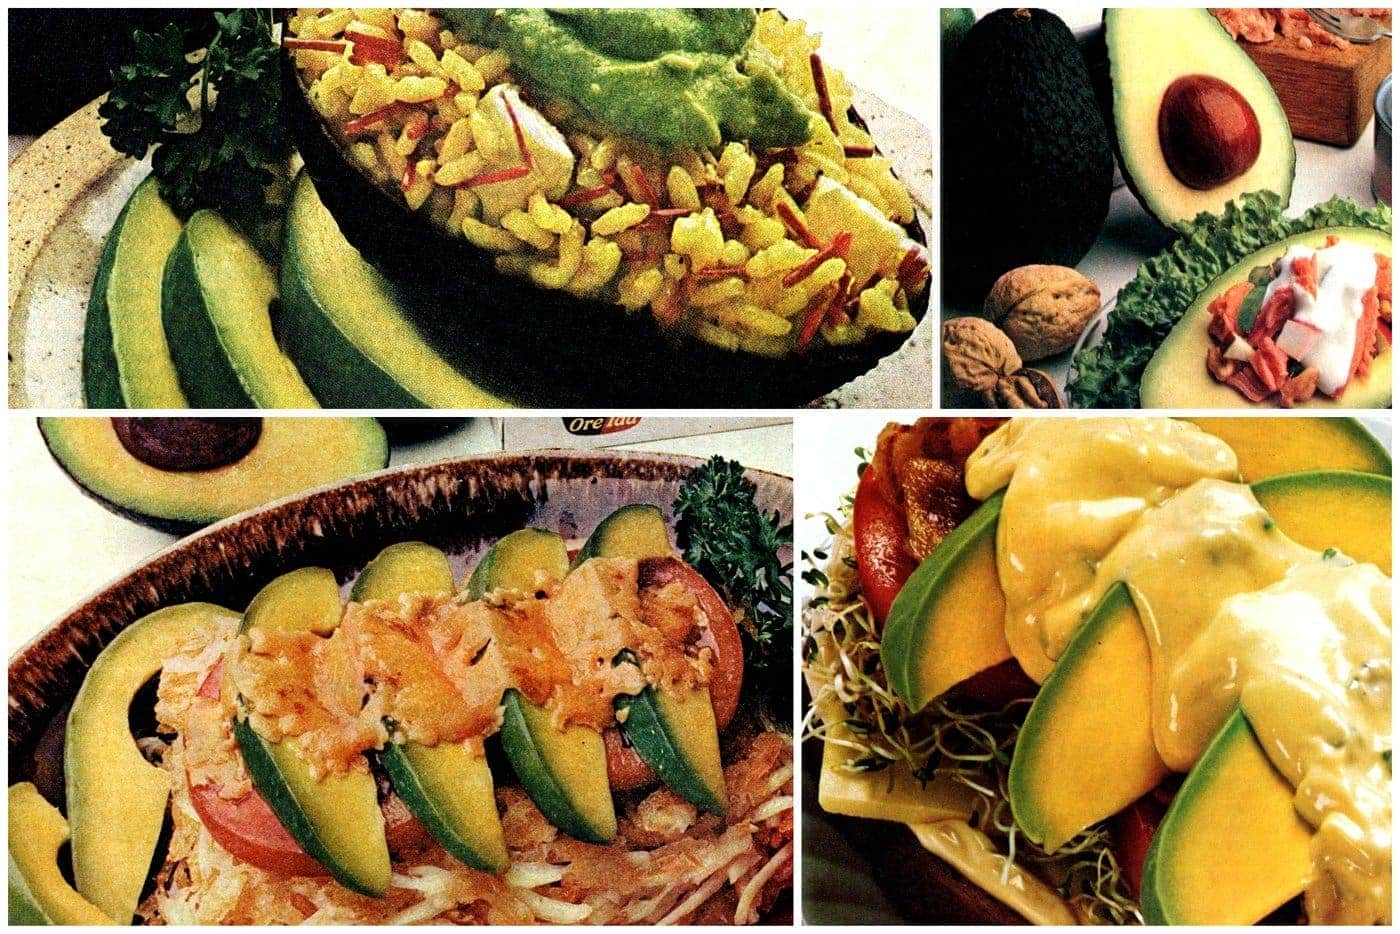 Easy avocado recipes from the 1970s and 1980s